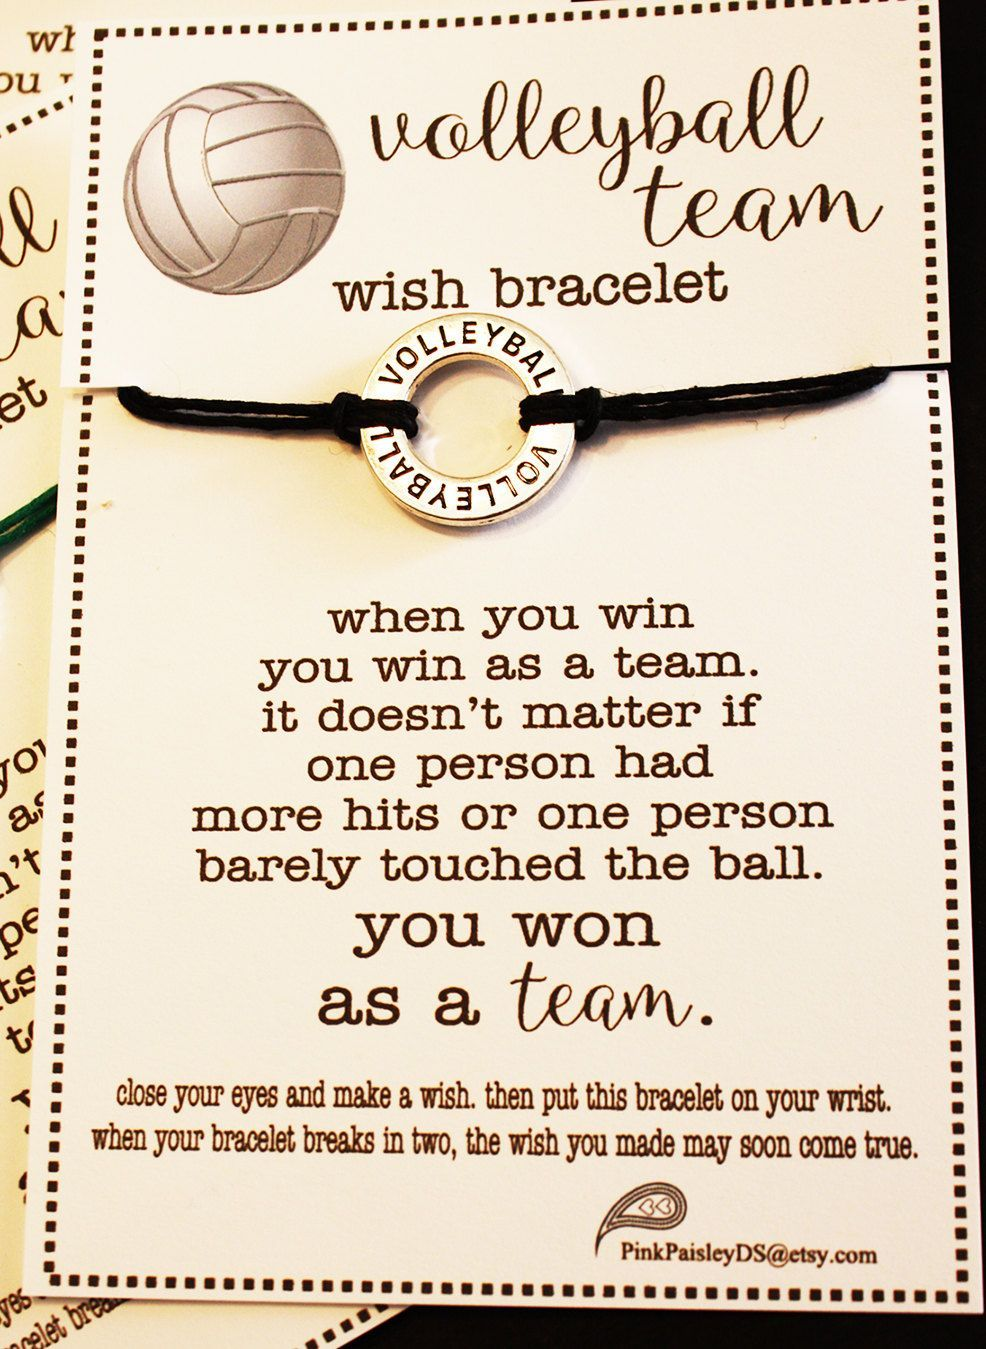 12 Volleyball Team Wish Bracelets Pick Your Qty Color Great For Team Gifts Team Spirit And More In 2020 Volleyball Team Volleyball Coach Gifts Volleyball Gifts